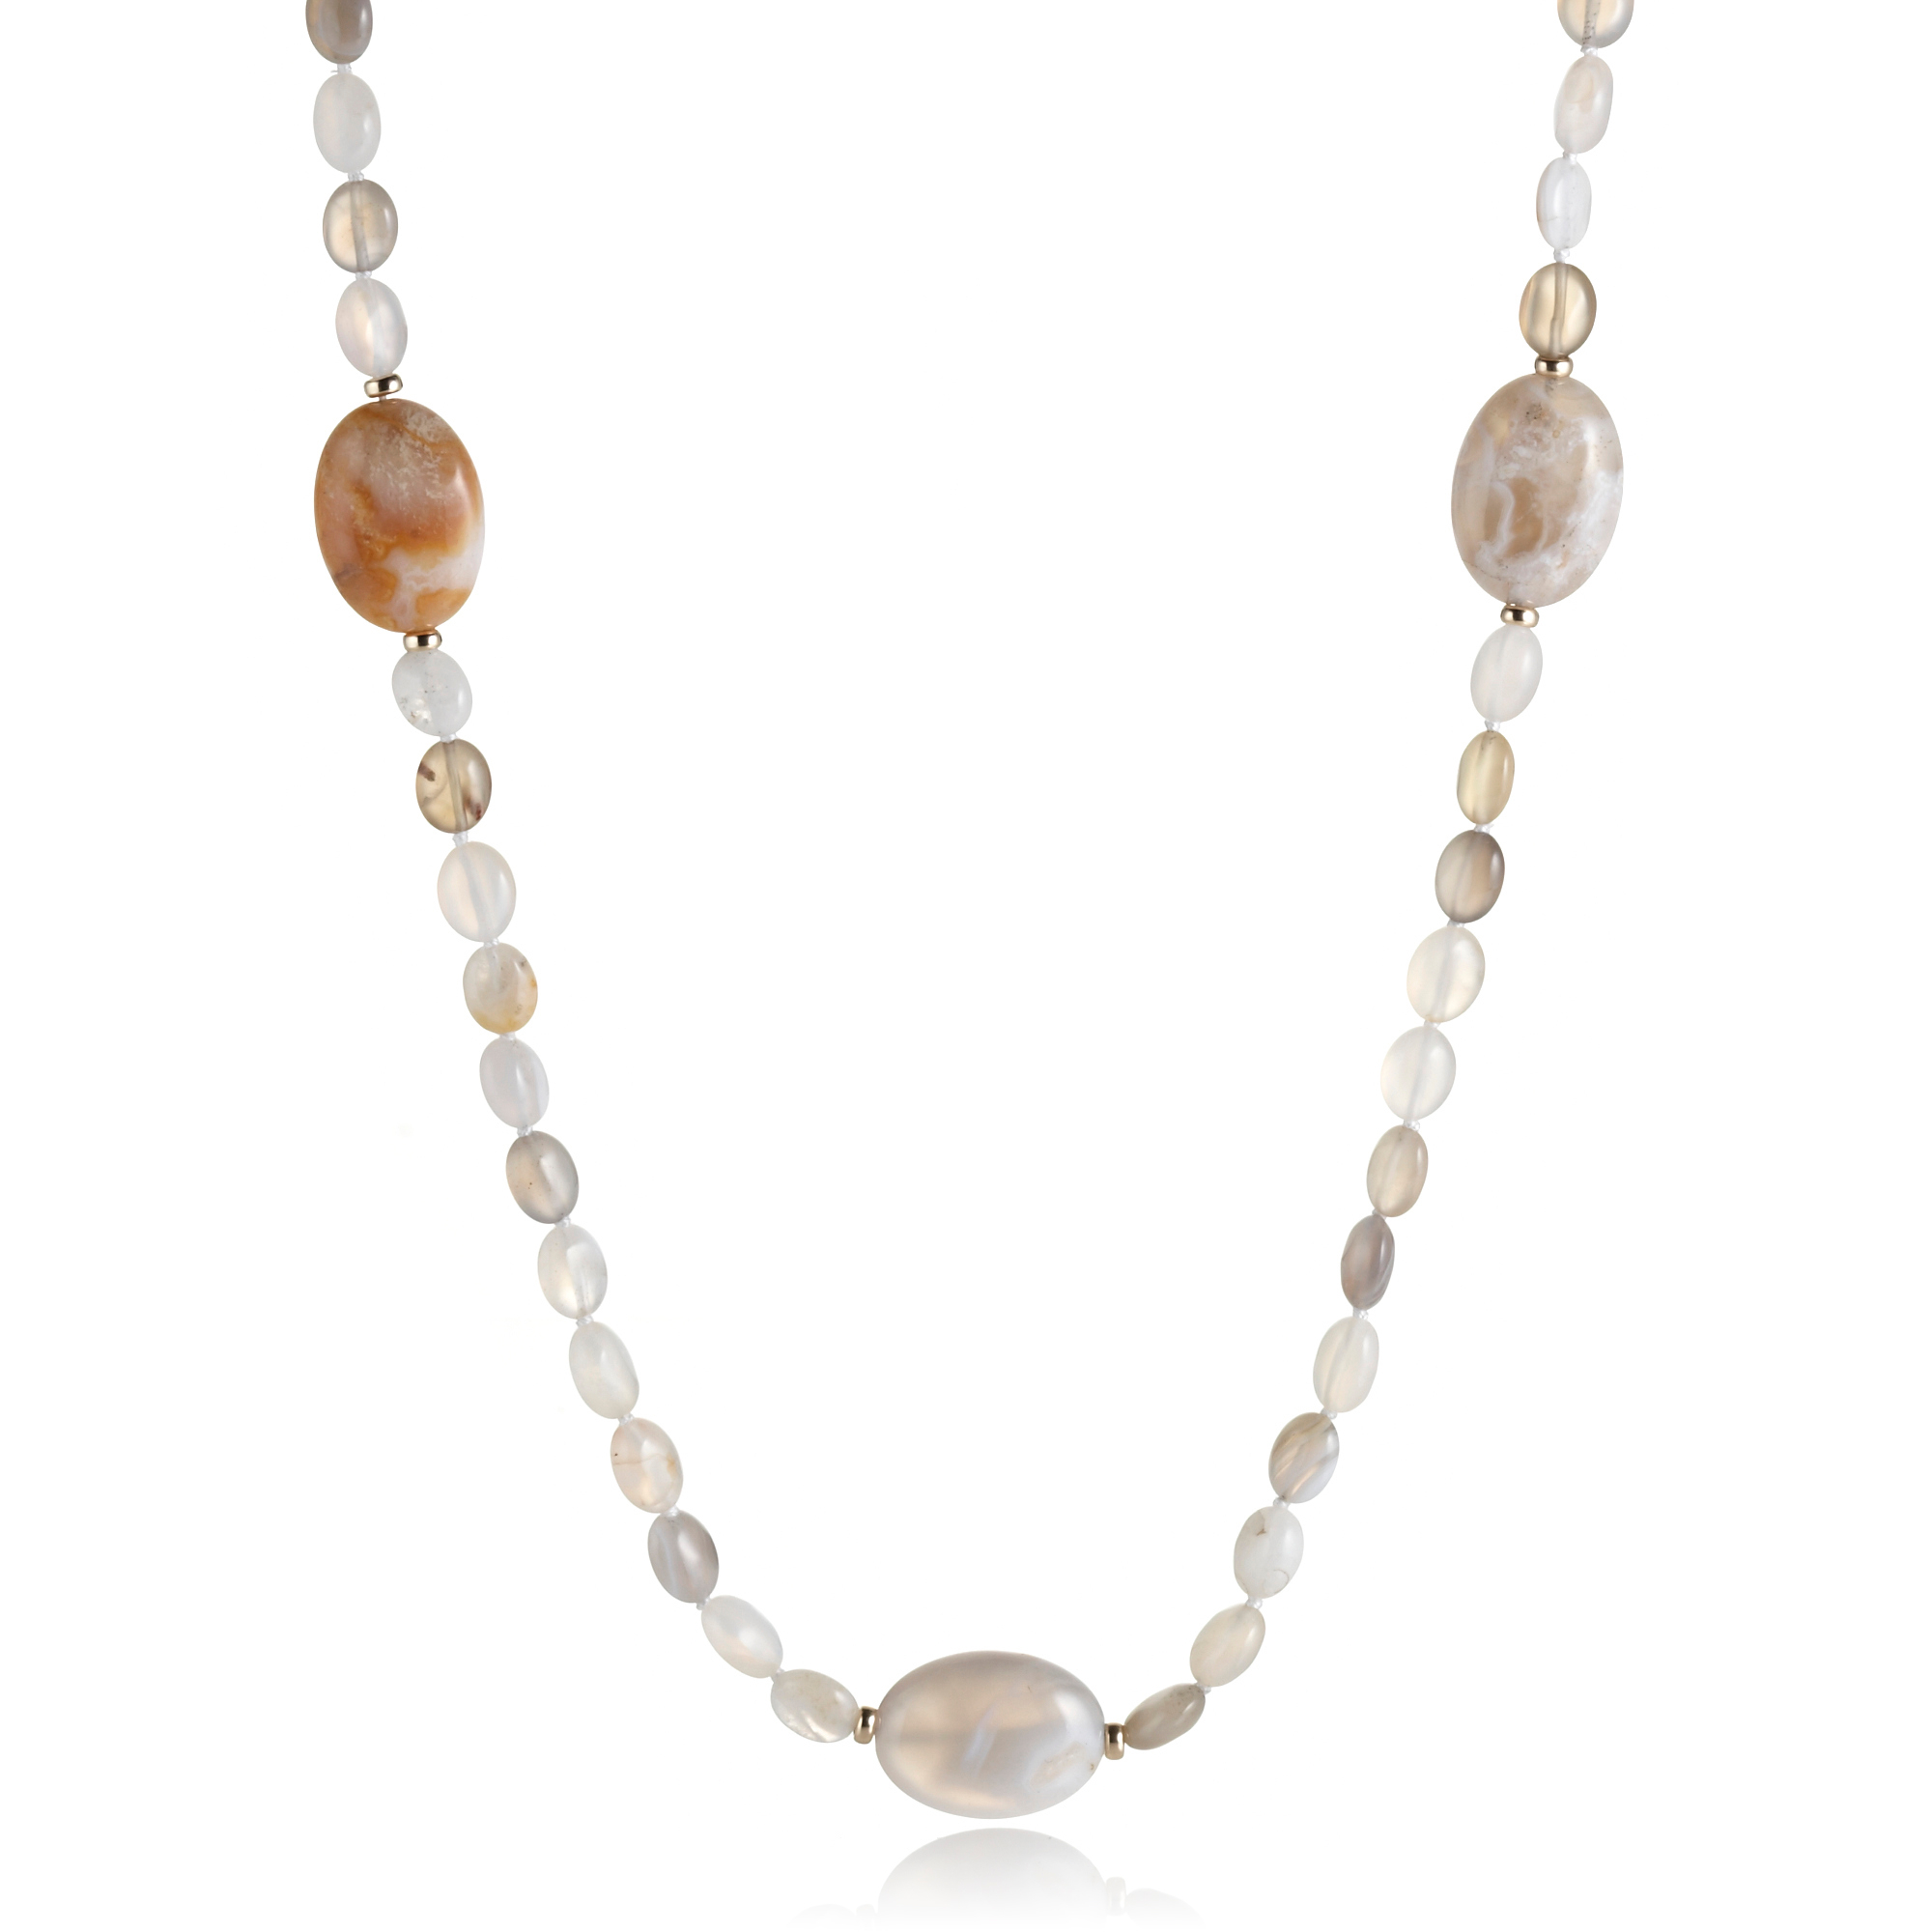 Gump's Agate Rope Necklace